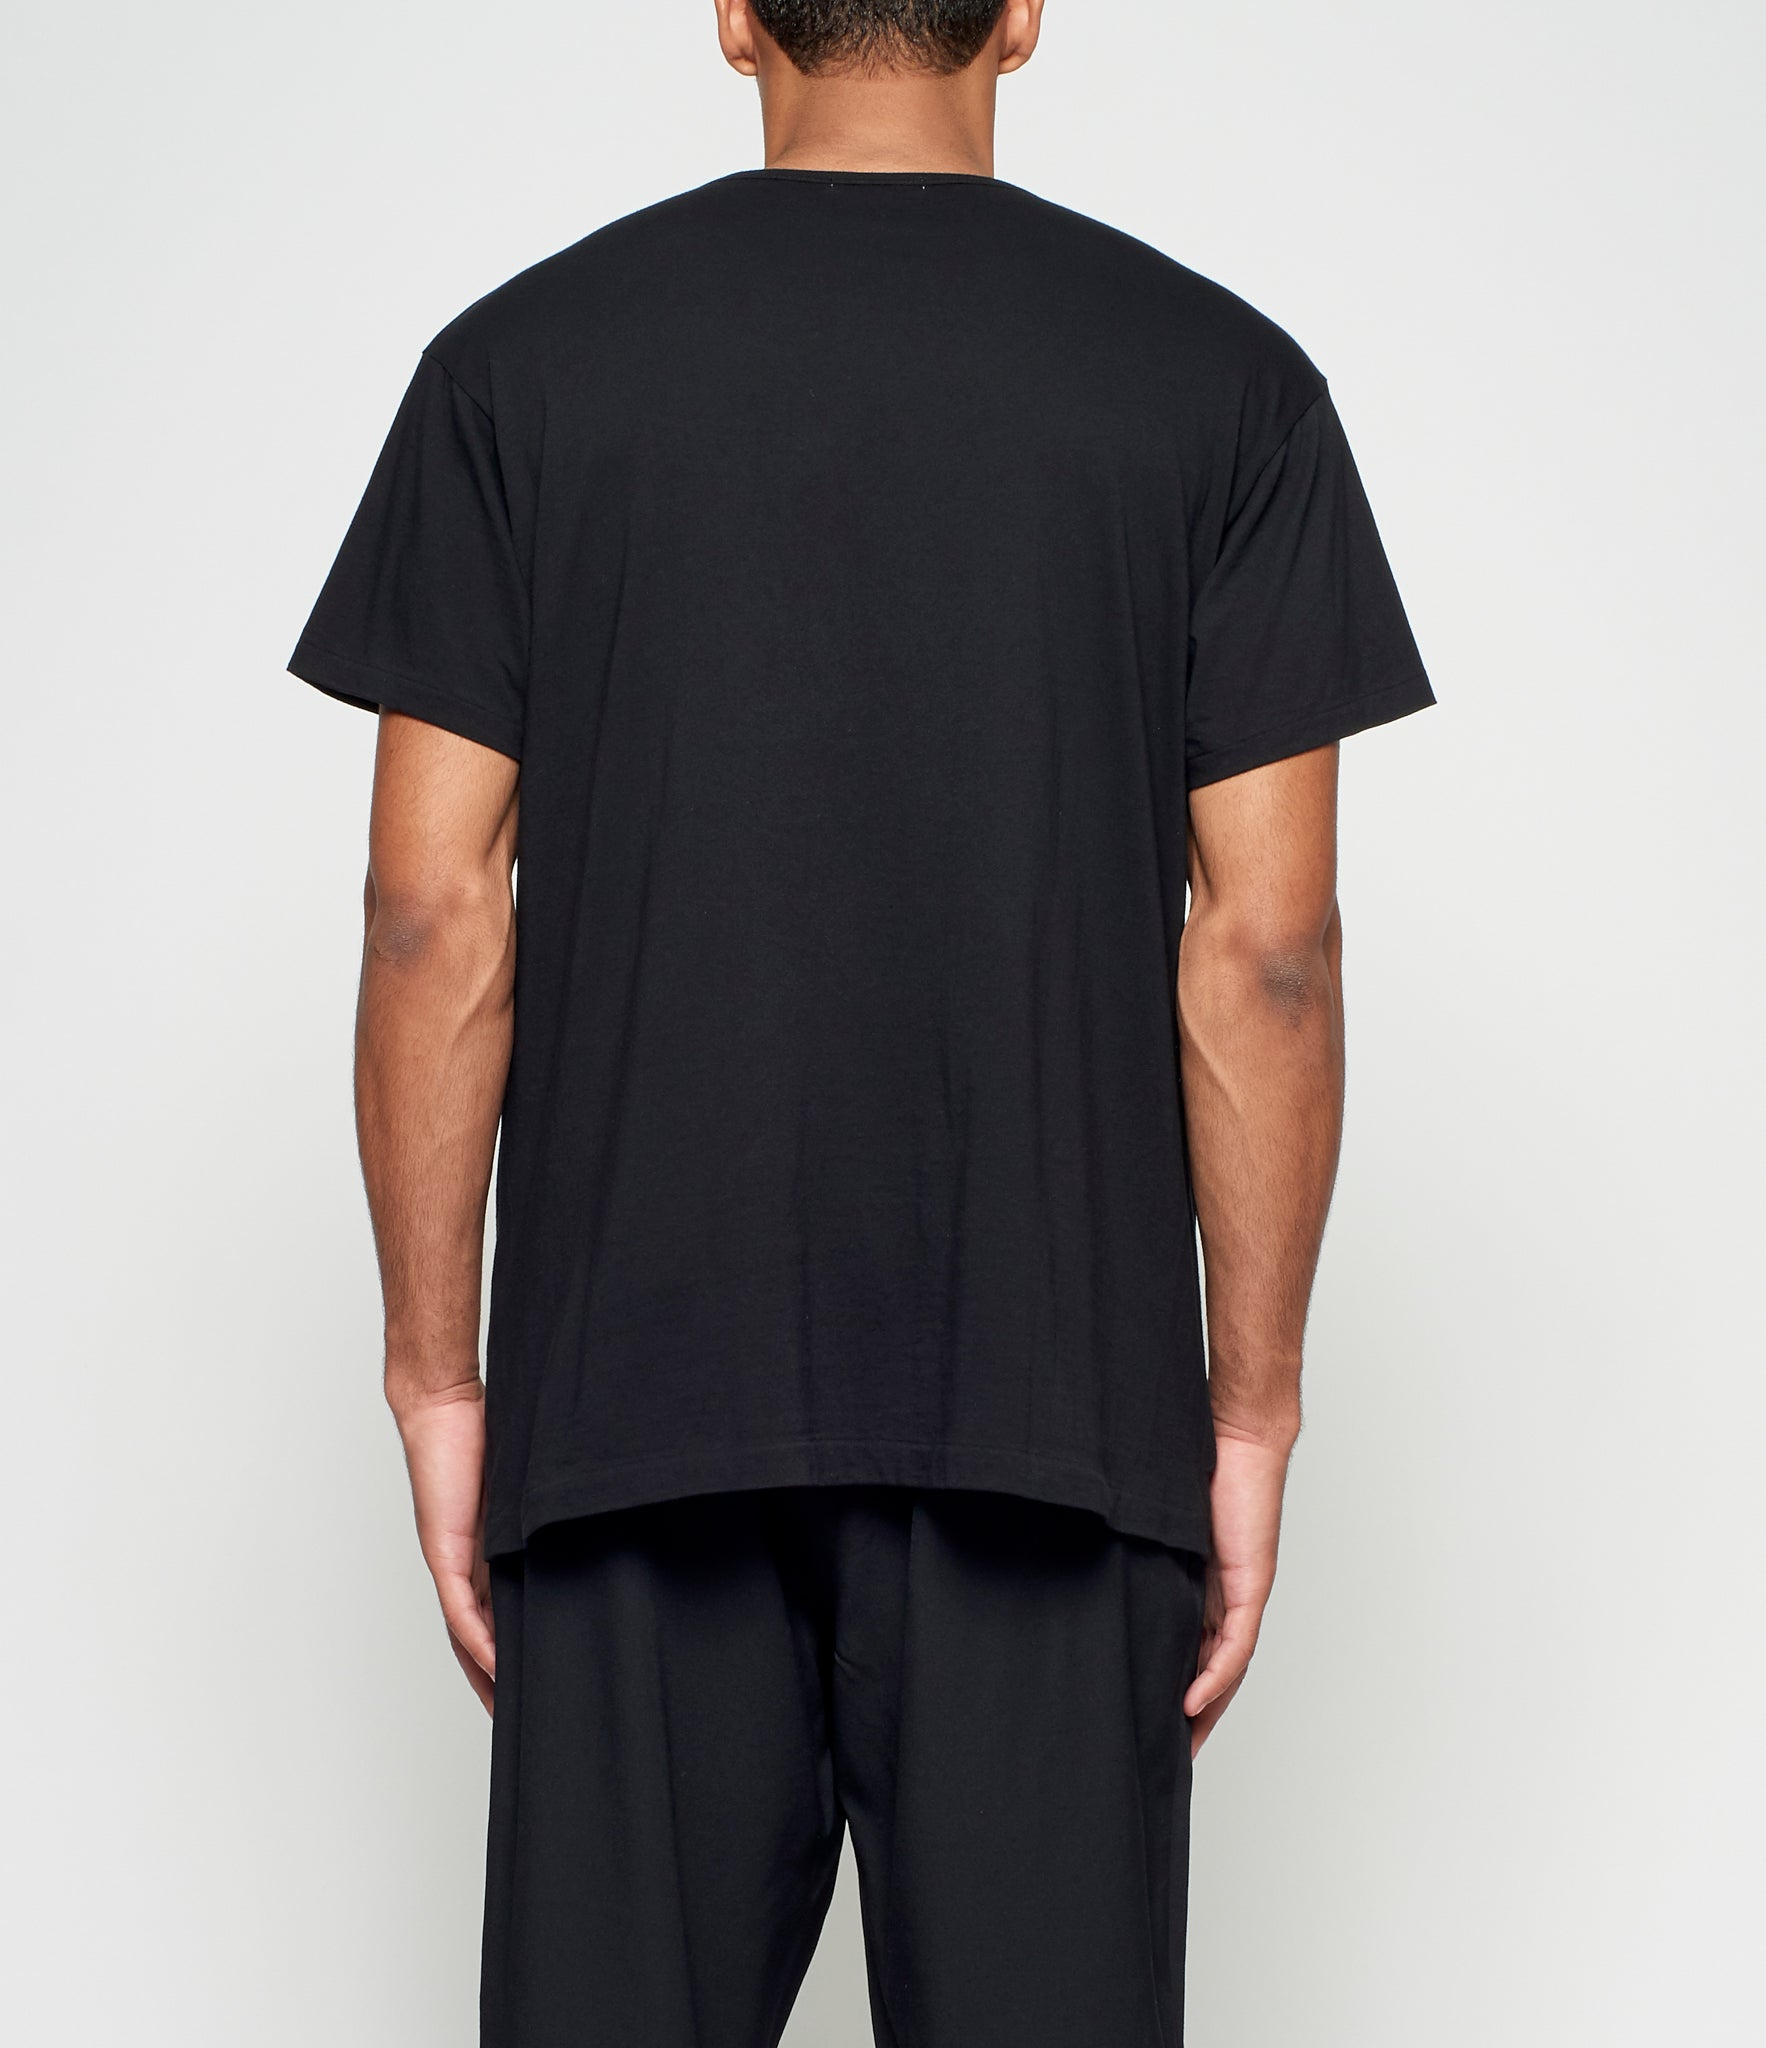 Yohji Yamamoto Pour Homme Pigment Discharge T-Shirt